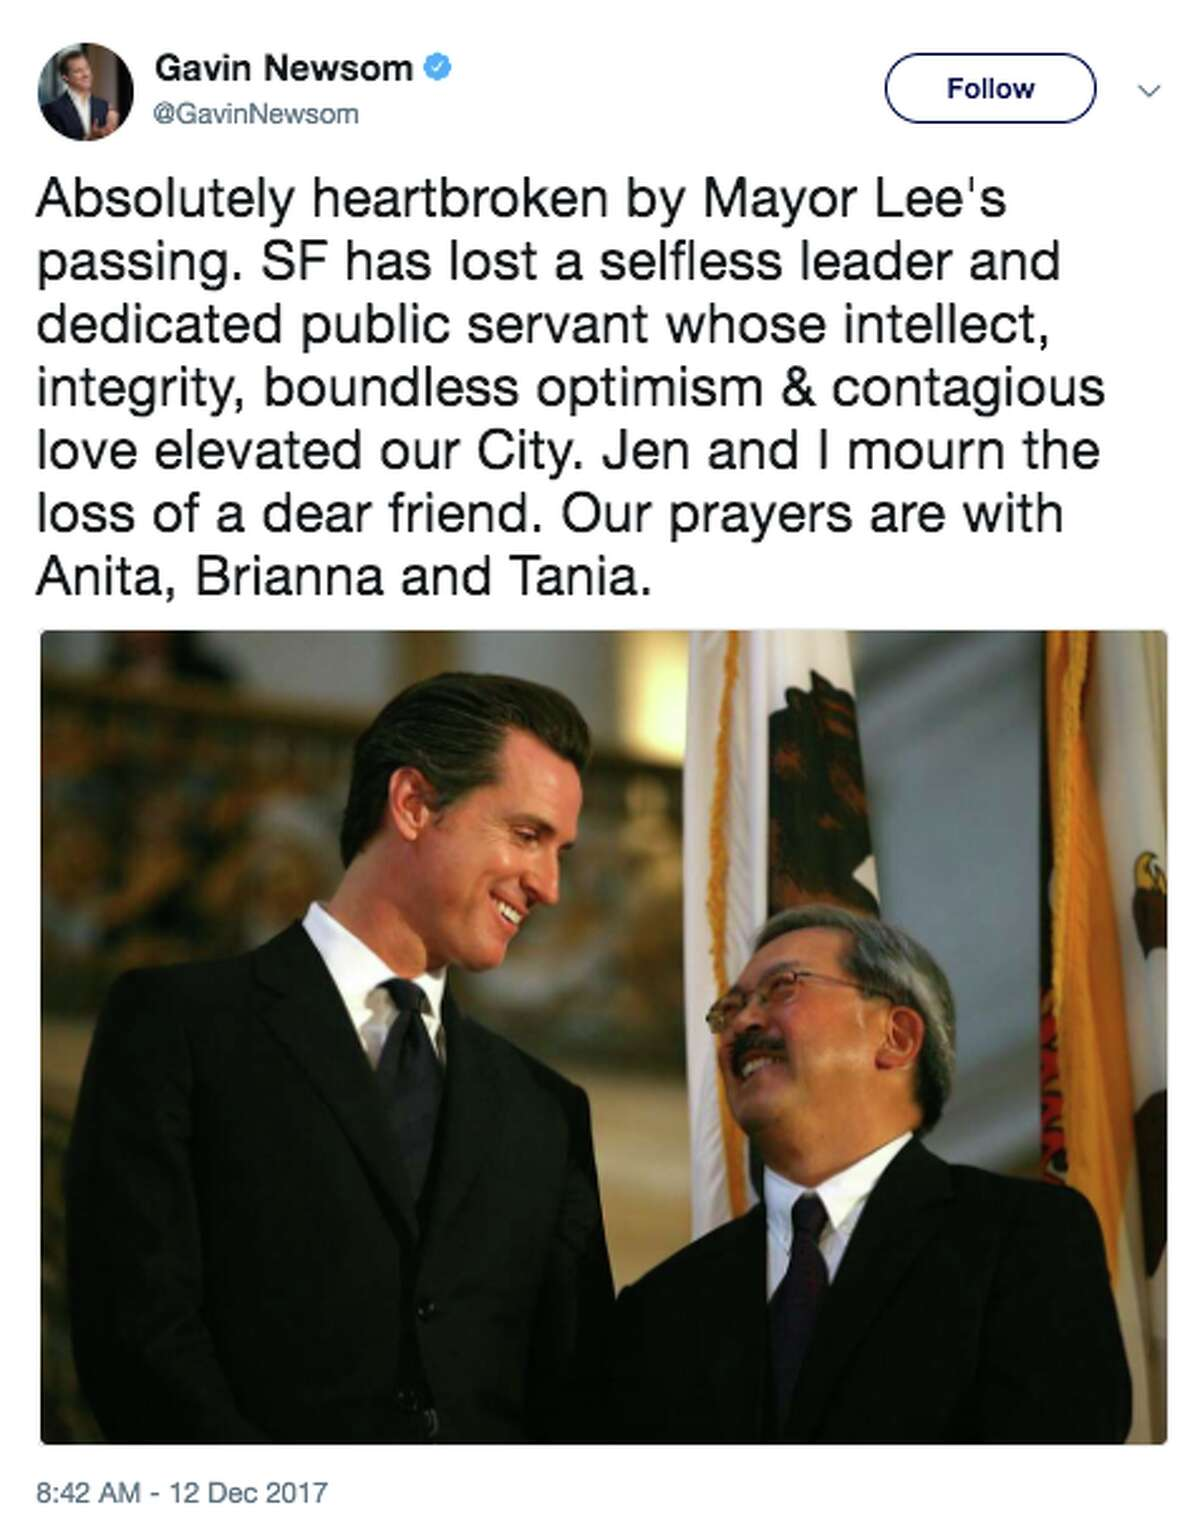 """Lieutenant Governor Gavin Newsom responded on Twitter to the passing of San Francisco Mayor Ed Lee by saying he's """"absolutely heartbroken."""""""